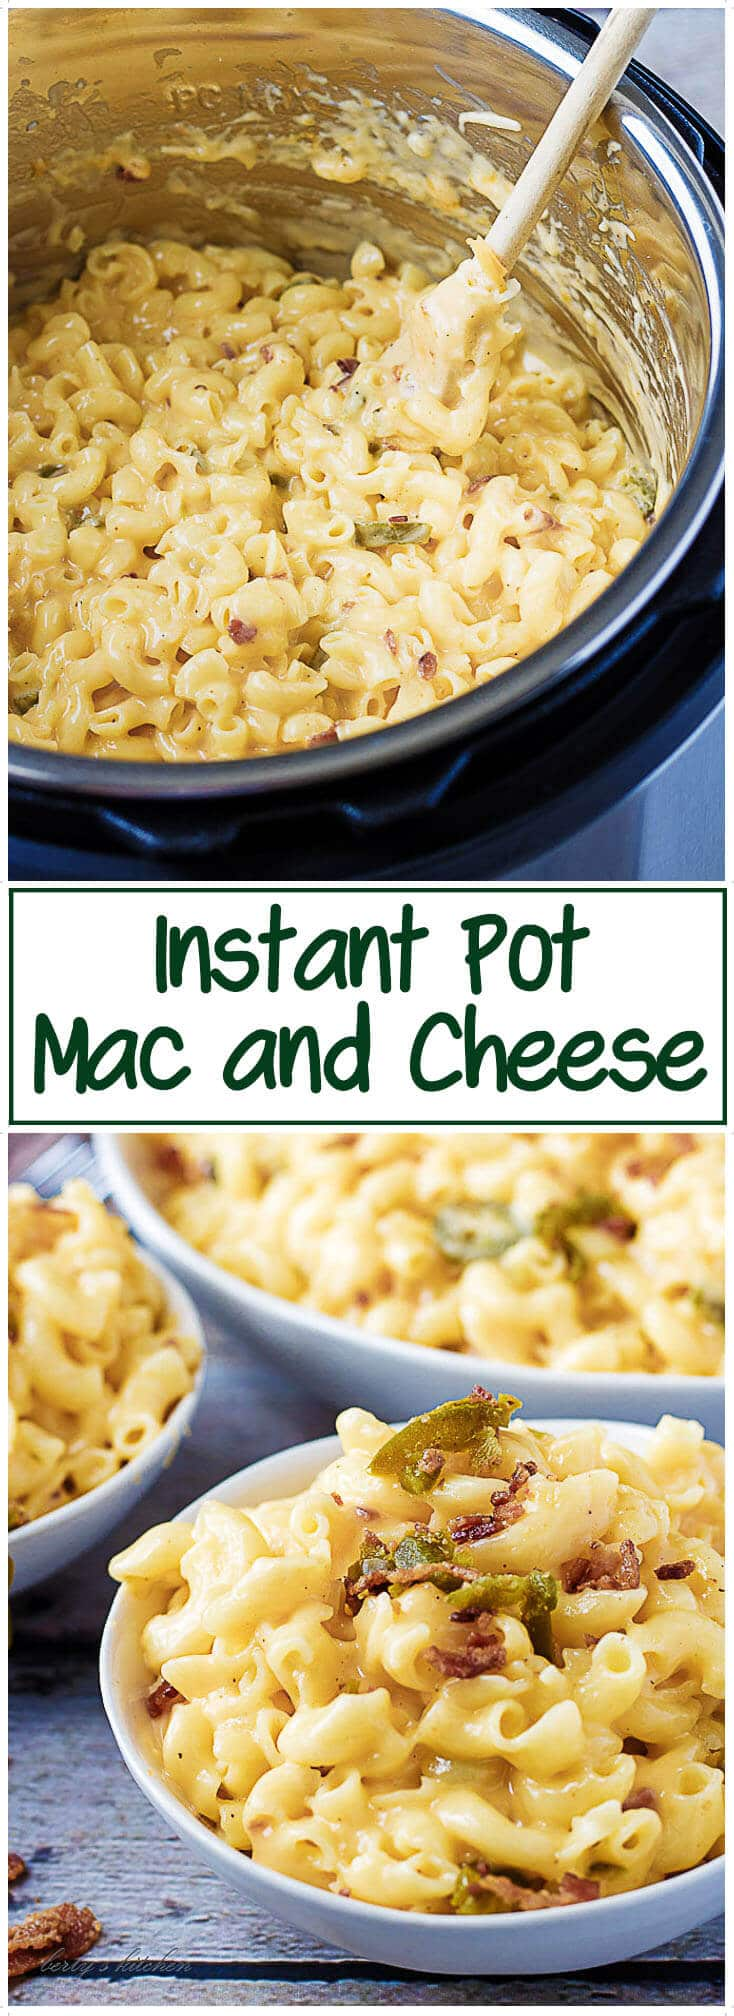 Instant Pot Mac and Cheese is the ultimate comfort food. It's full of creamy cheddar and Parmesan cheeses, bits of crunchy bacon, and spicy jalapenos. #InstantPot #macandcheese #cheese #cheesy #bacon #jalapenos #dinner #easyrecipe #quick